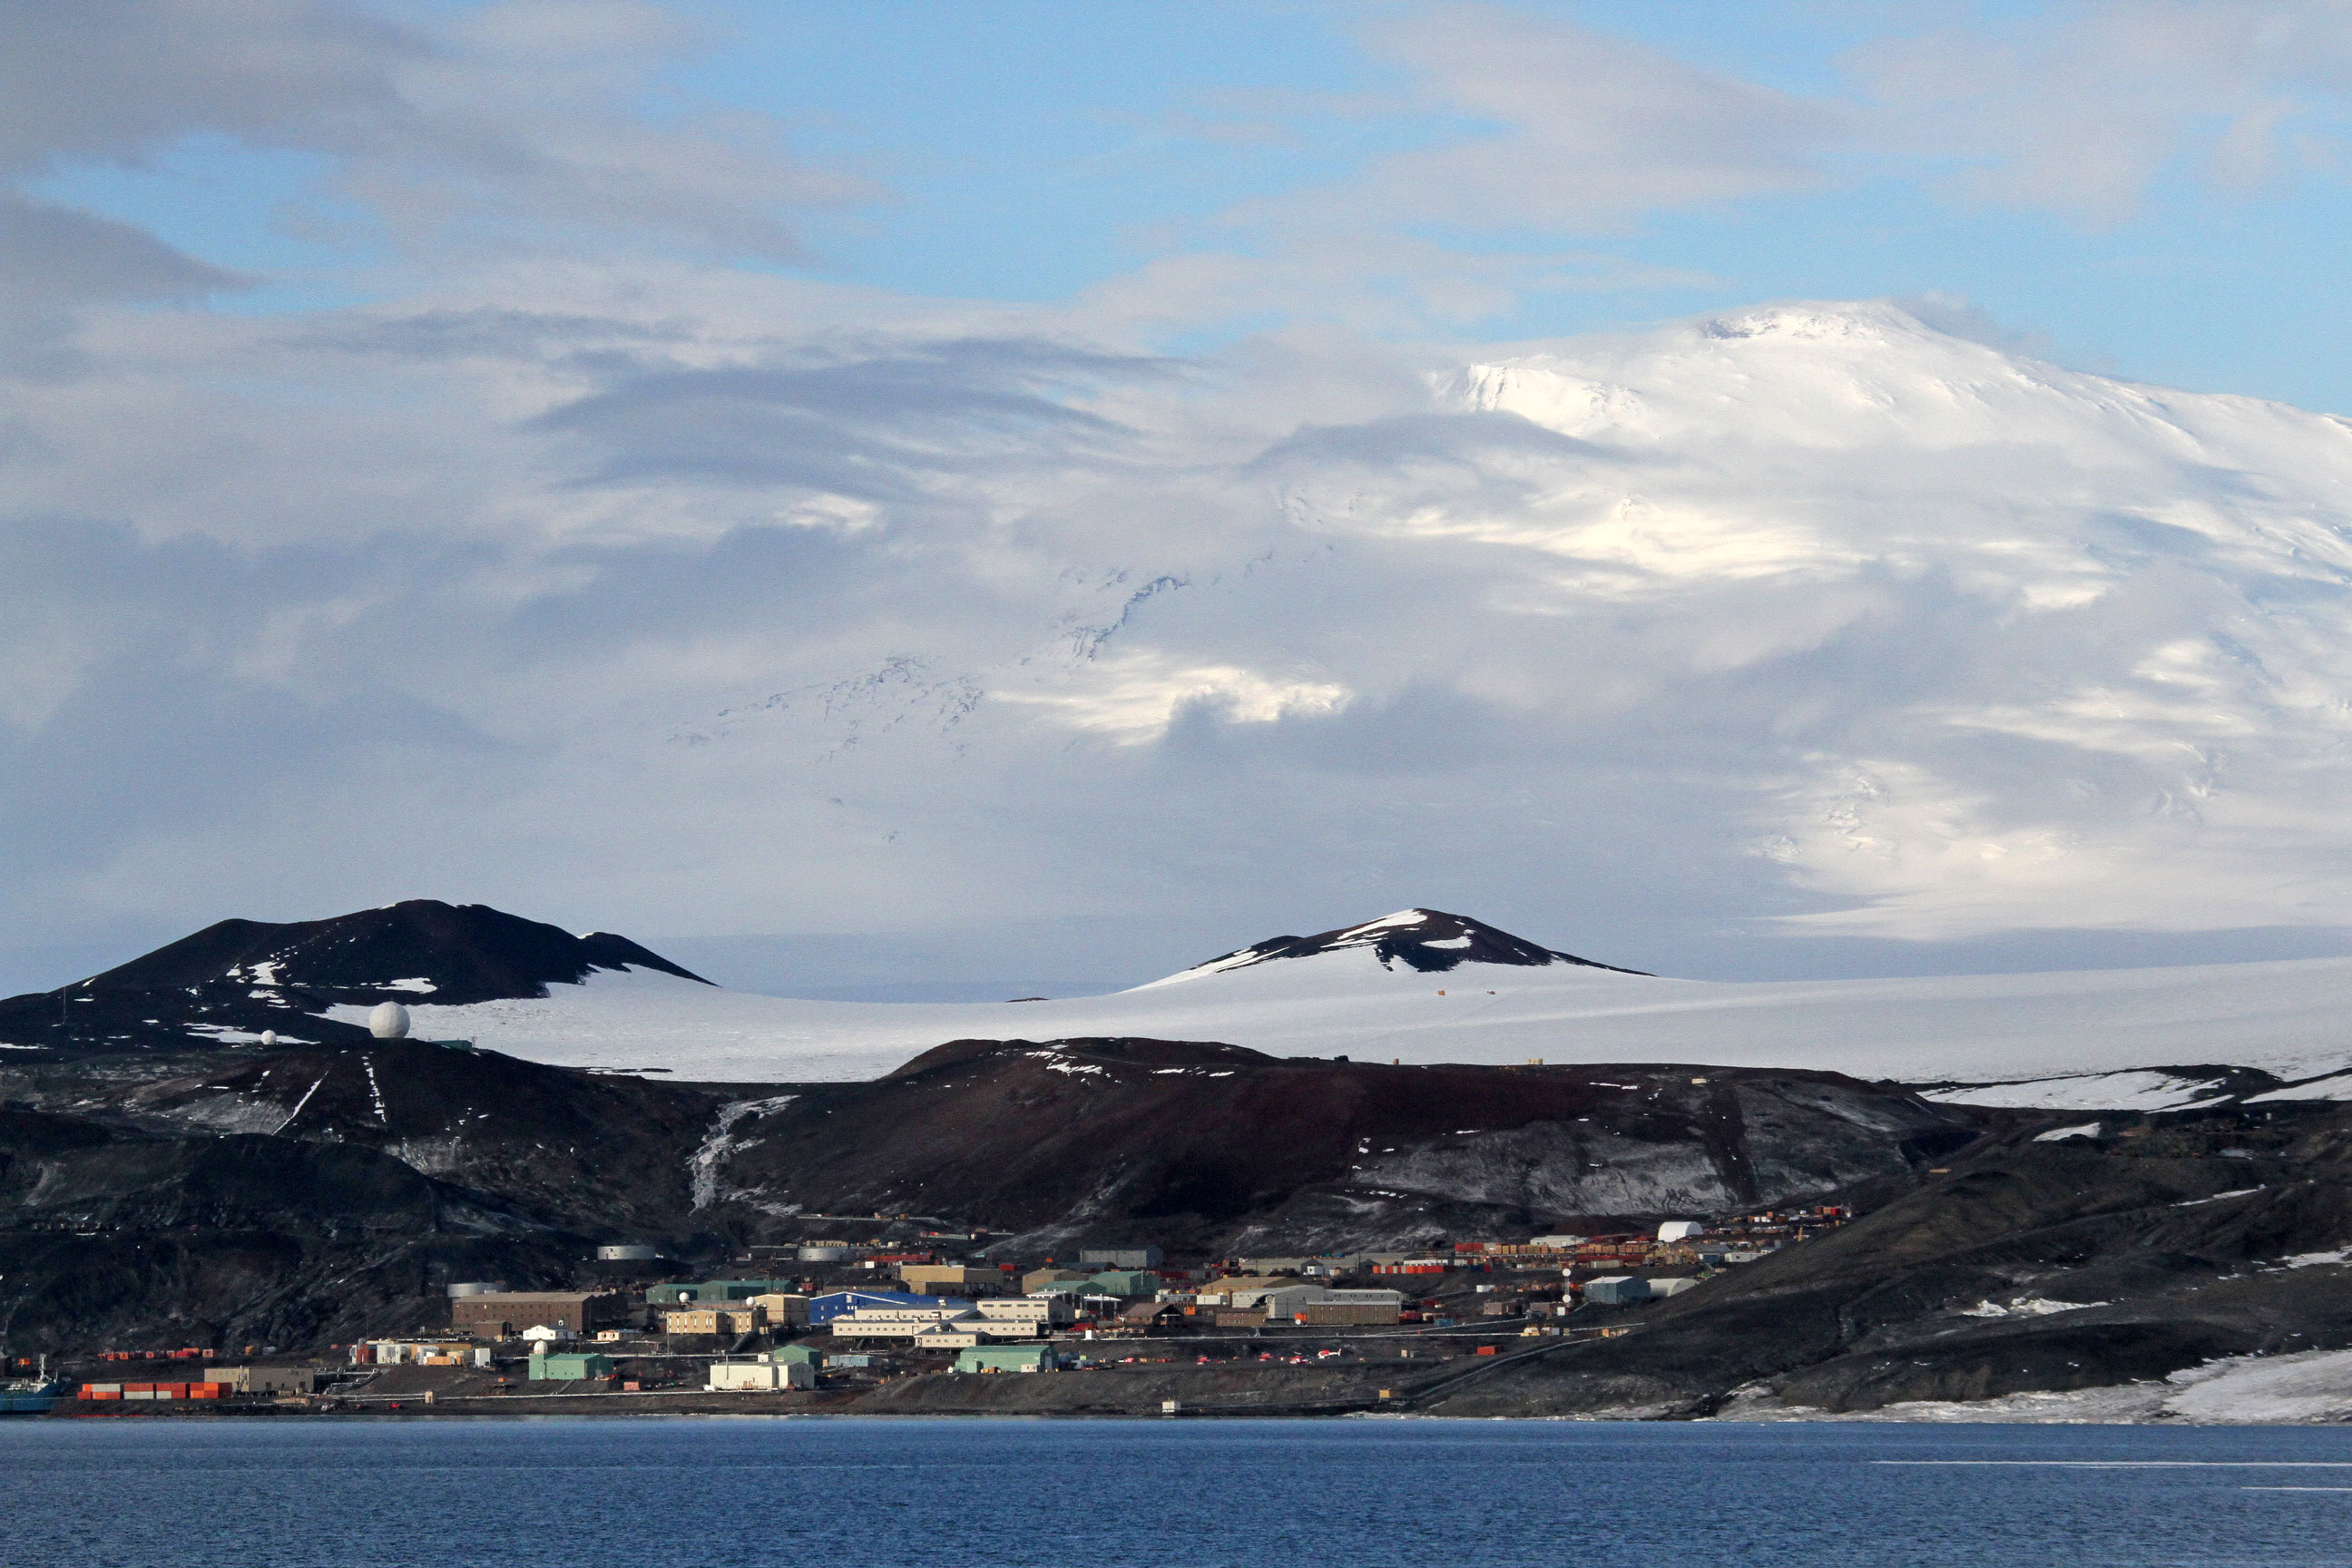 McMurdo Station, the US Antarctic research base with an imposing Mt. Erebus volcano in the distance.